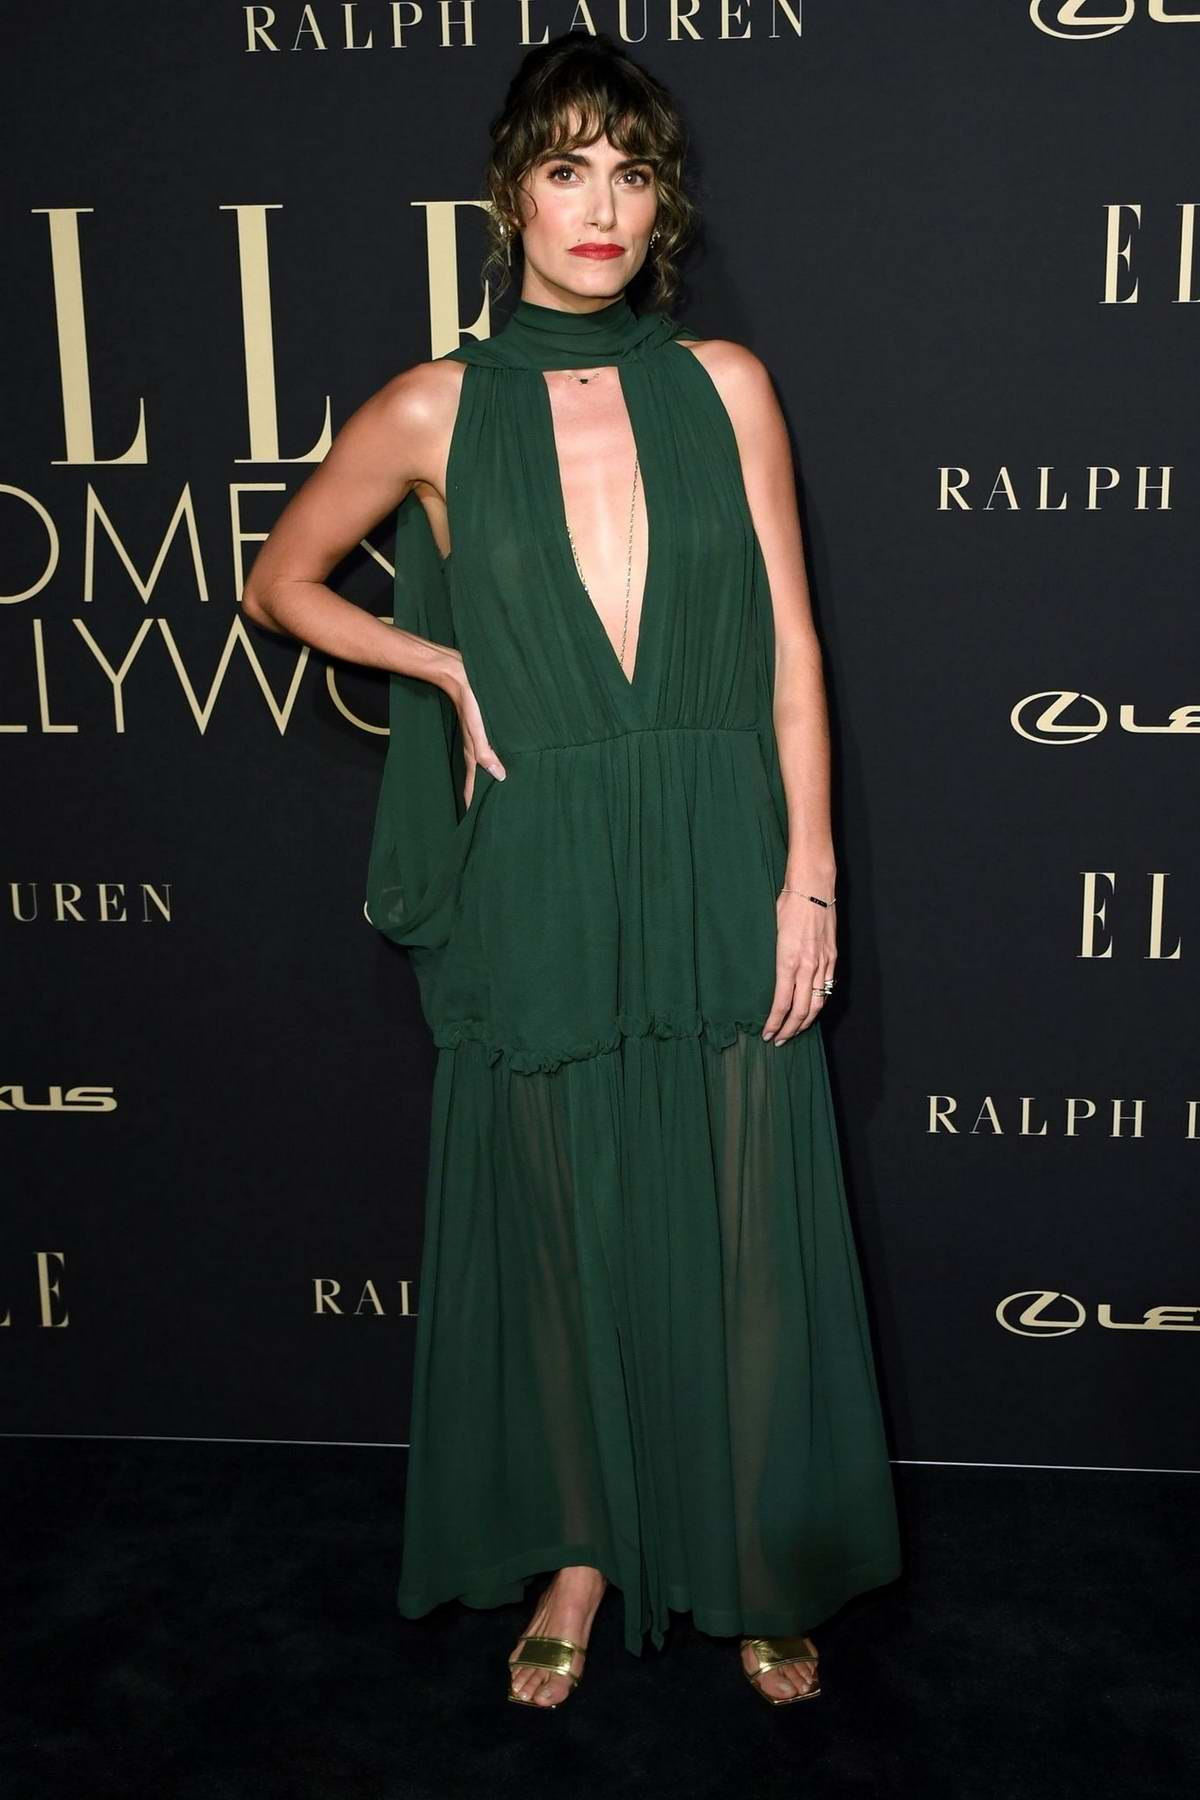 Nikki Reed attends ELLE's 26th Annual Women In Hollywood Celebration at The Four Seasons Hotel in Beverly Hills, California